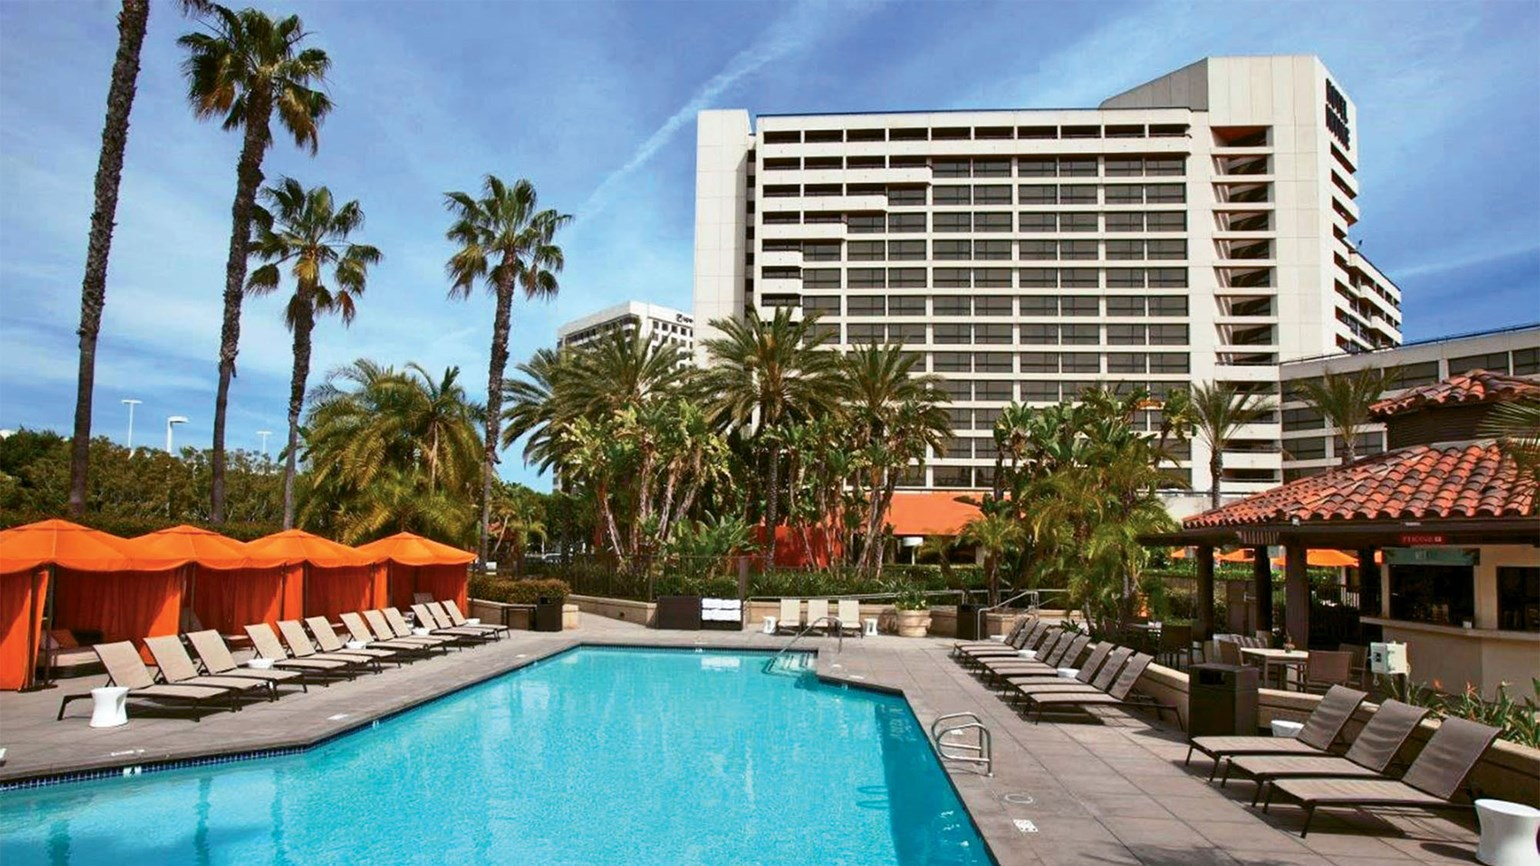 California 39 s hotel irvine features fourth of july summer - Menzies hotel irvine swimming pool ...